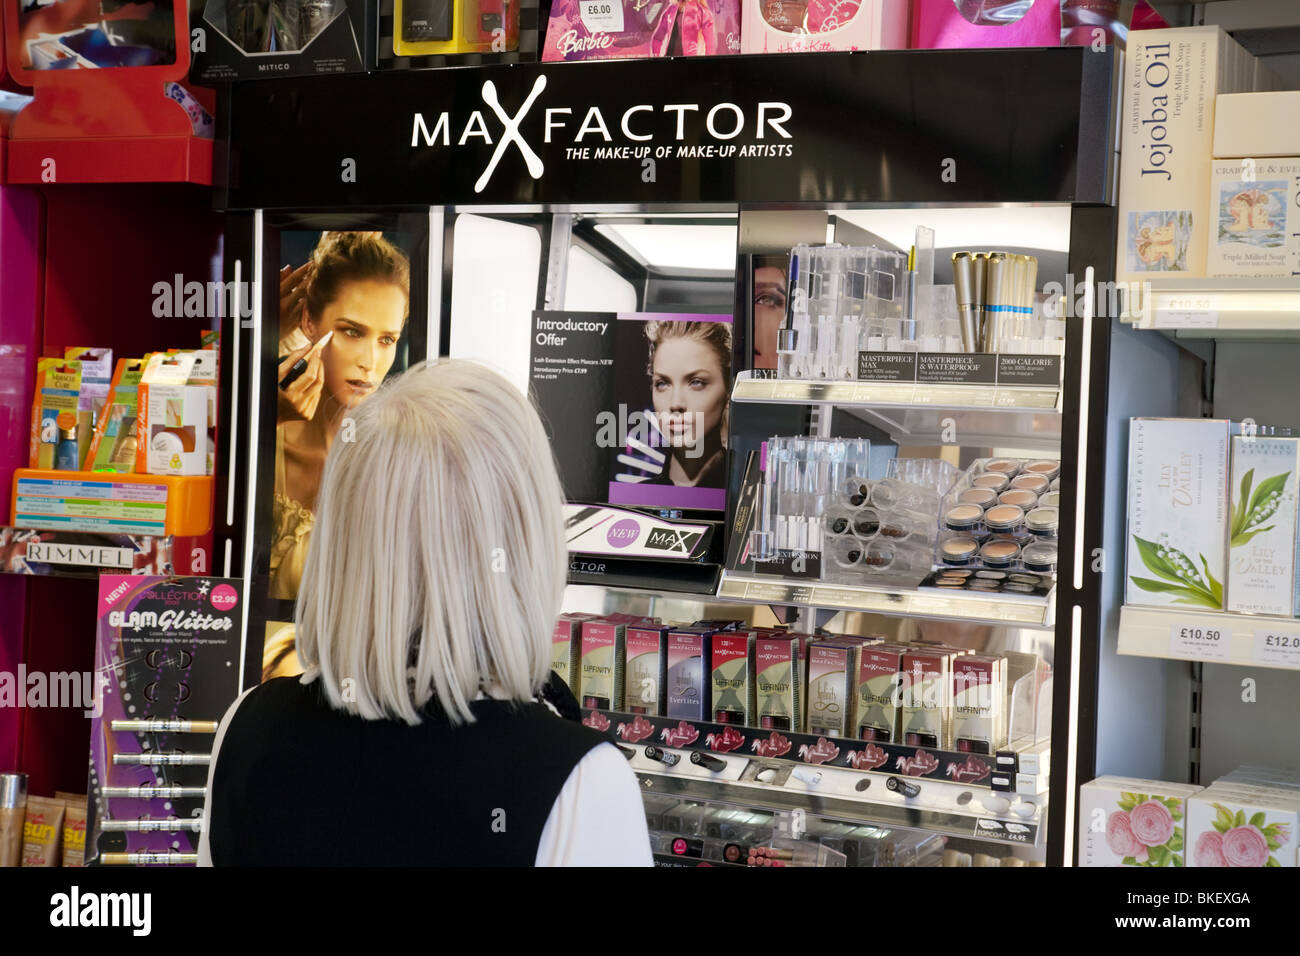 A woman looking at Max Factor cosmetics in a shop, Kent, UK - Stock Image